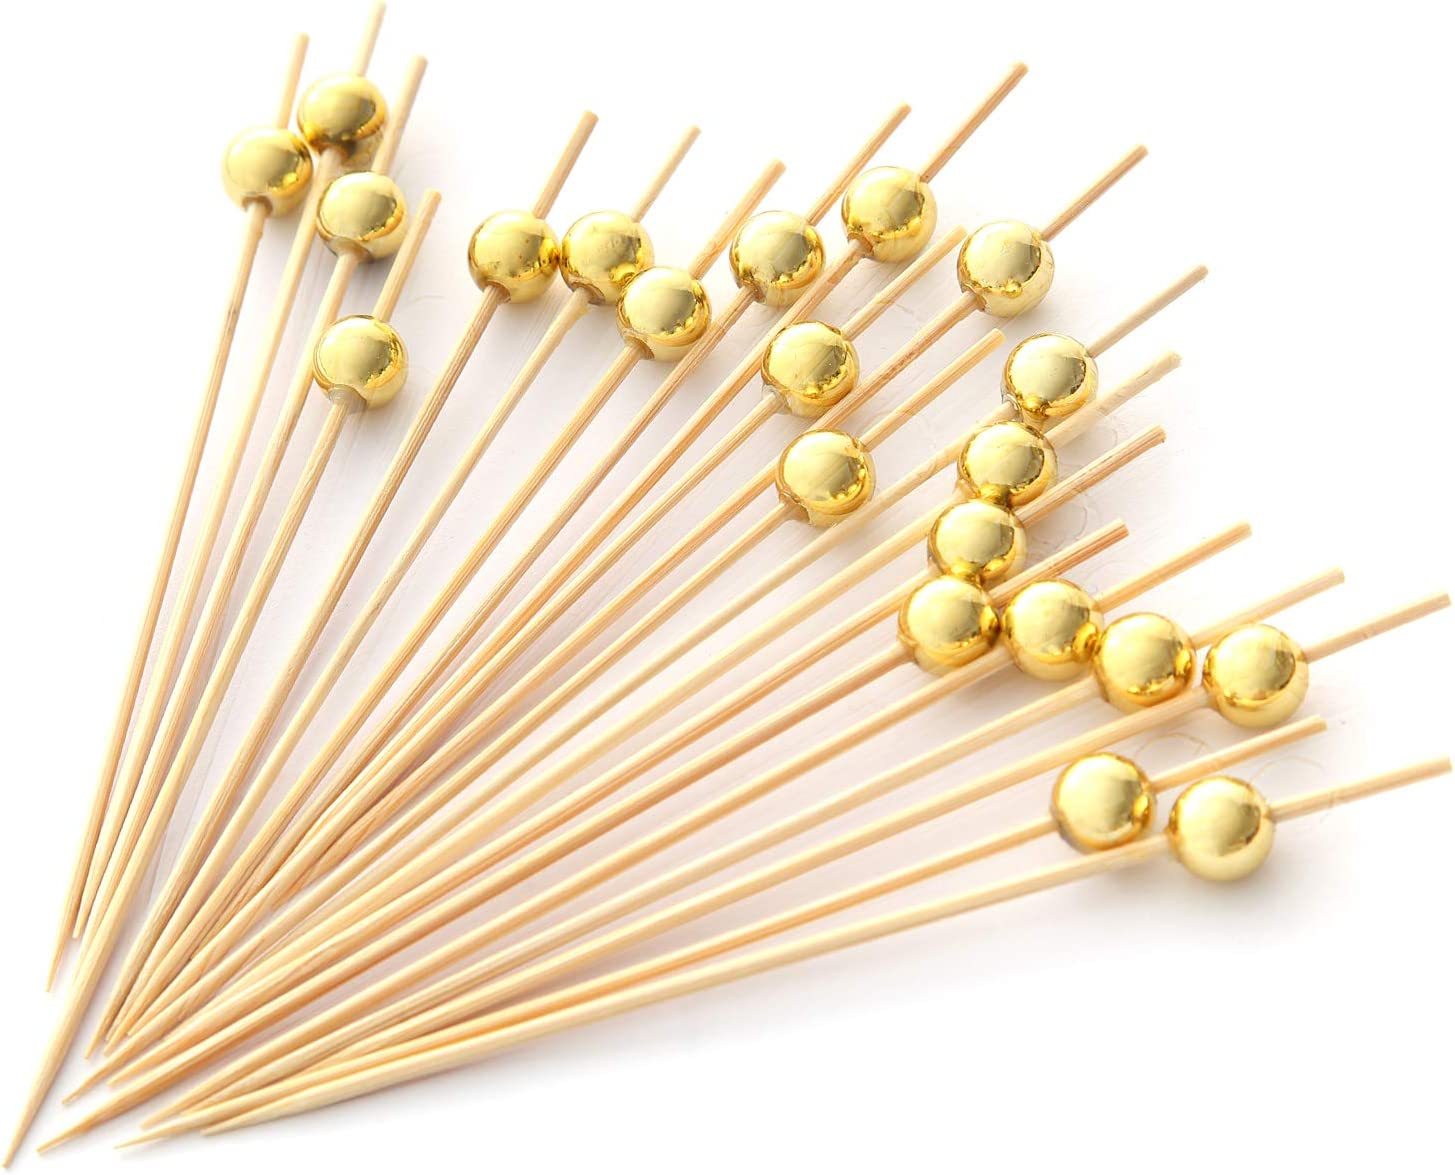 2 x 500 Pack Wooden Wood Cocktail Party Sticks Stick Tooth Pick Picks